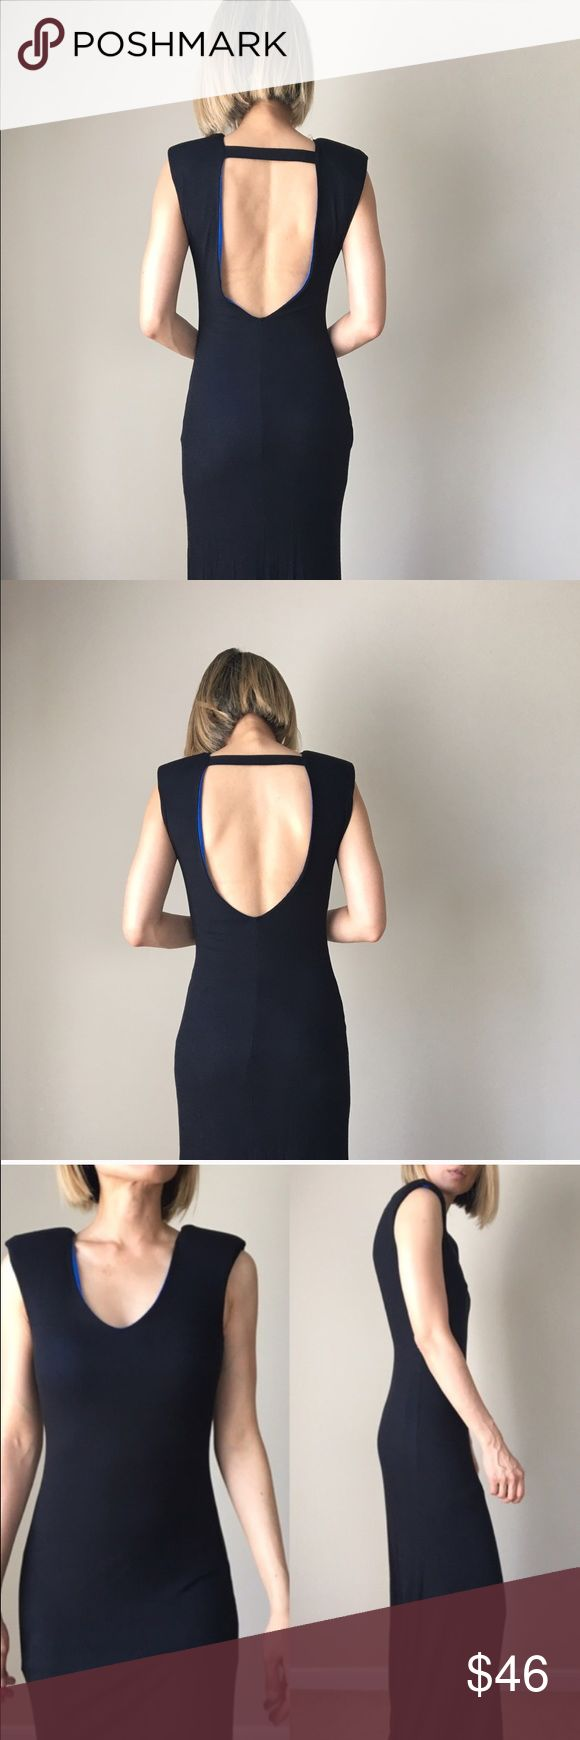 "Luxe boutique androgynous SEXY BACK black dress Well made top quality Androgynous and chic. Line and padded shoulder dress. A structured maxi dress full length .well made top quality.98%rayon 2%spandex .S:Long; 60"" bust 16"" w: 15"" M; Long 61"", bust, 17"" w: 16 sexy. ❤️❤️❤❤️️👉🏼Follow me on  📸INSTAGRAM: @chic_bomb  and 💁🏻📘FACEBOOK: @thechicbomb❤️❤️❤️❤️ CHICBOMB Dresses Maxi"